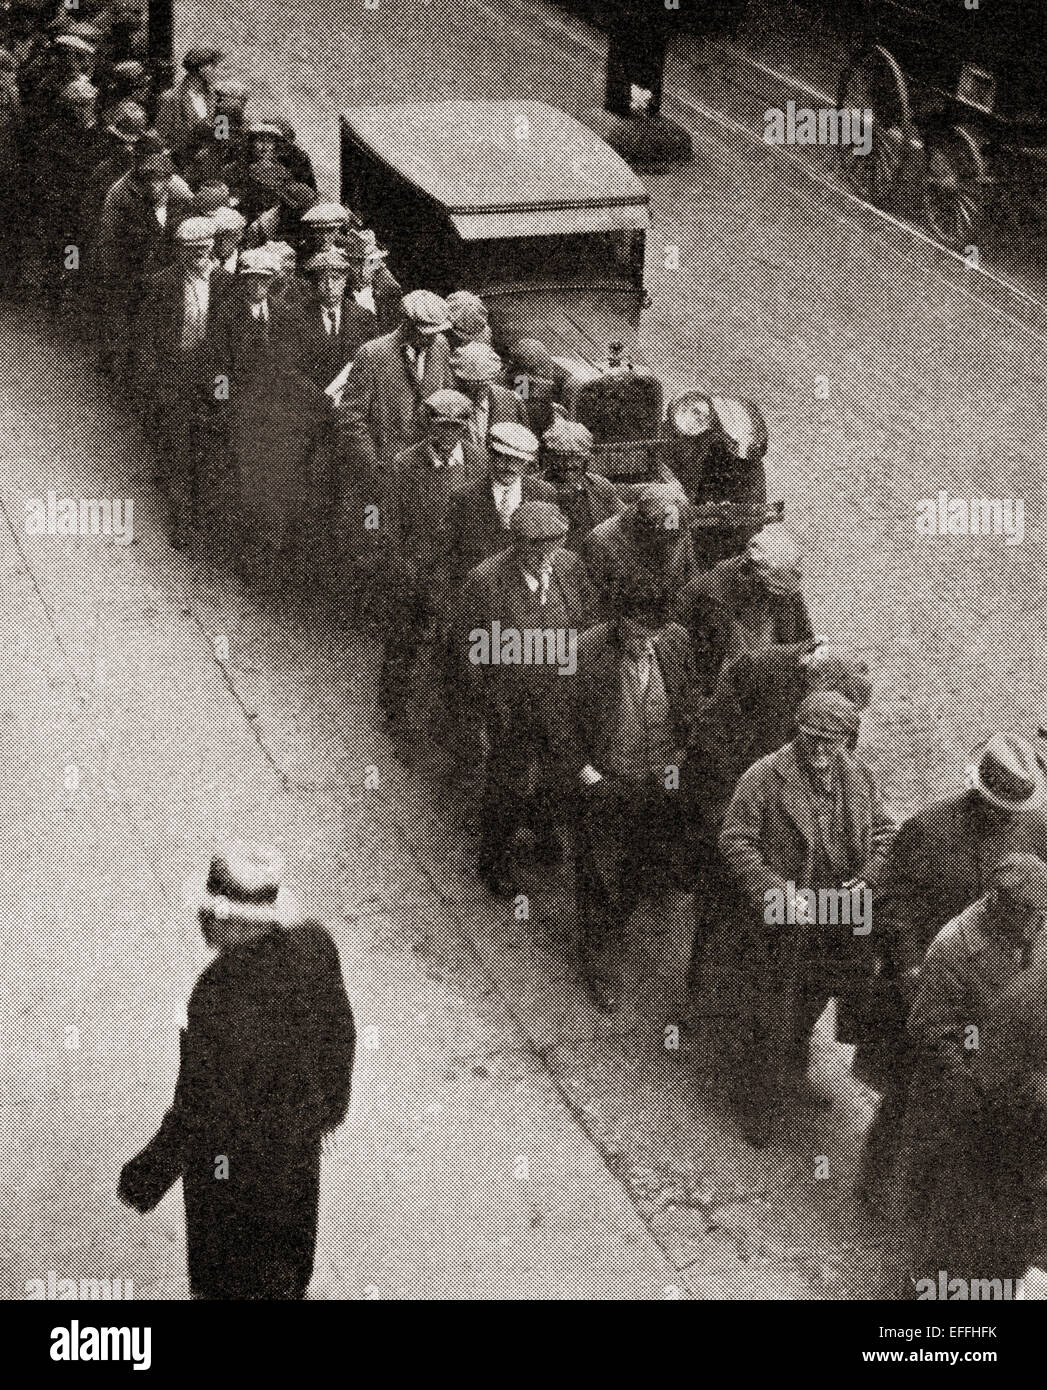 A soup line at The Bowery Mission,  Manhattan, New York City, United States of America during the great depression. - Stock Image